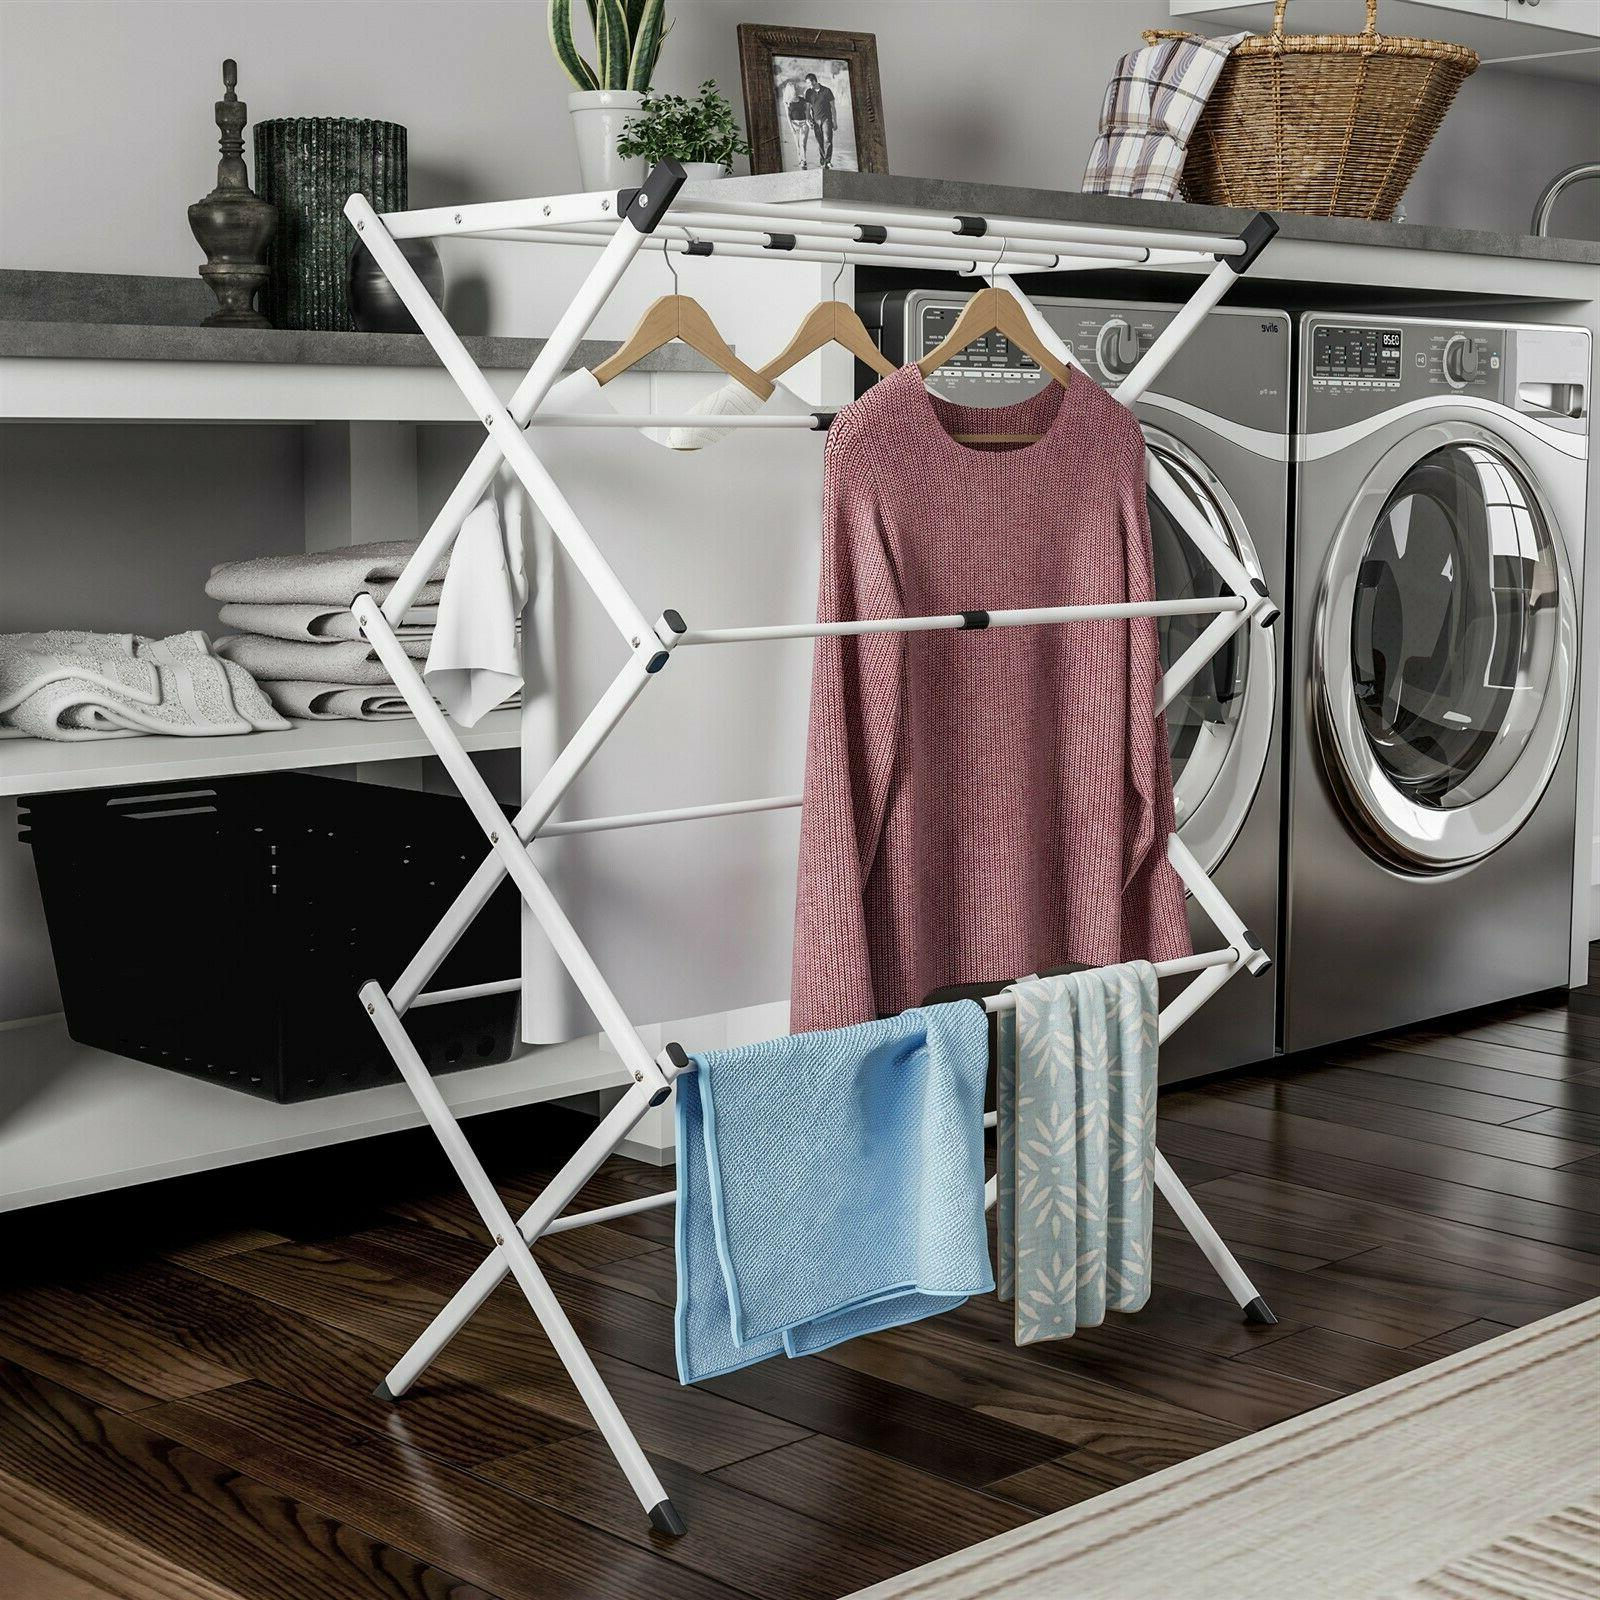 Collapsible Line Air Drying Laundry Hang Delicates